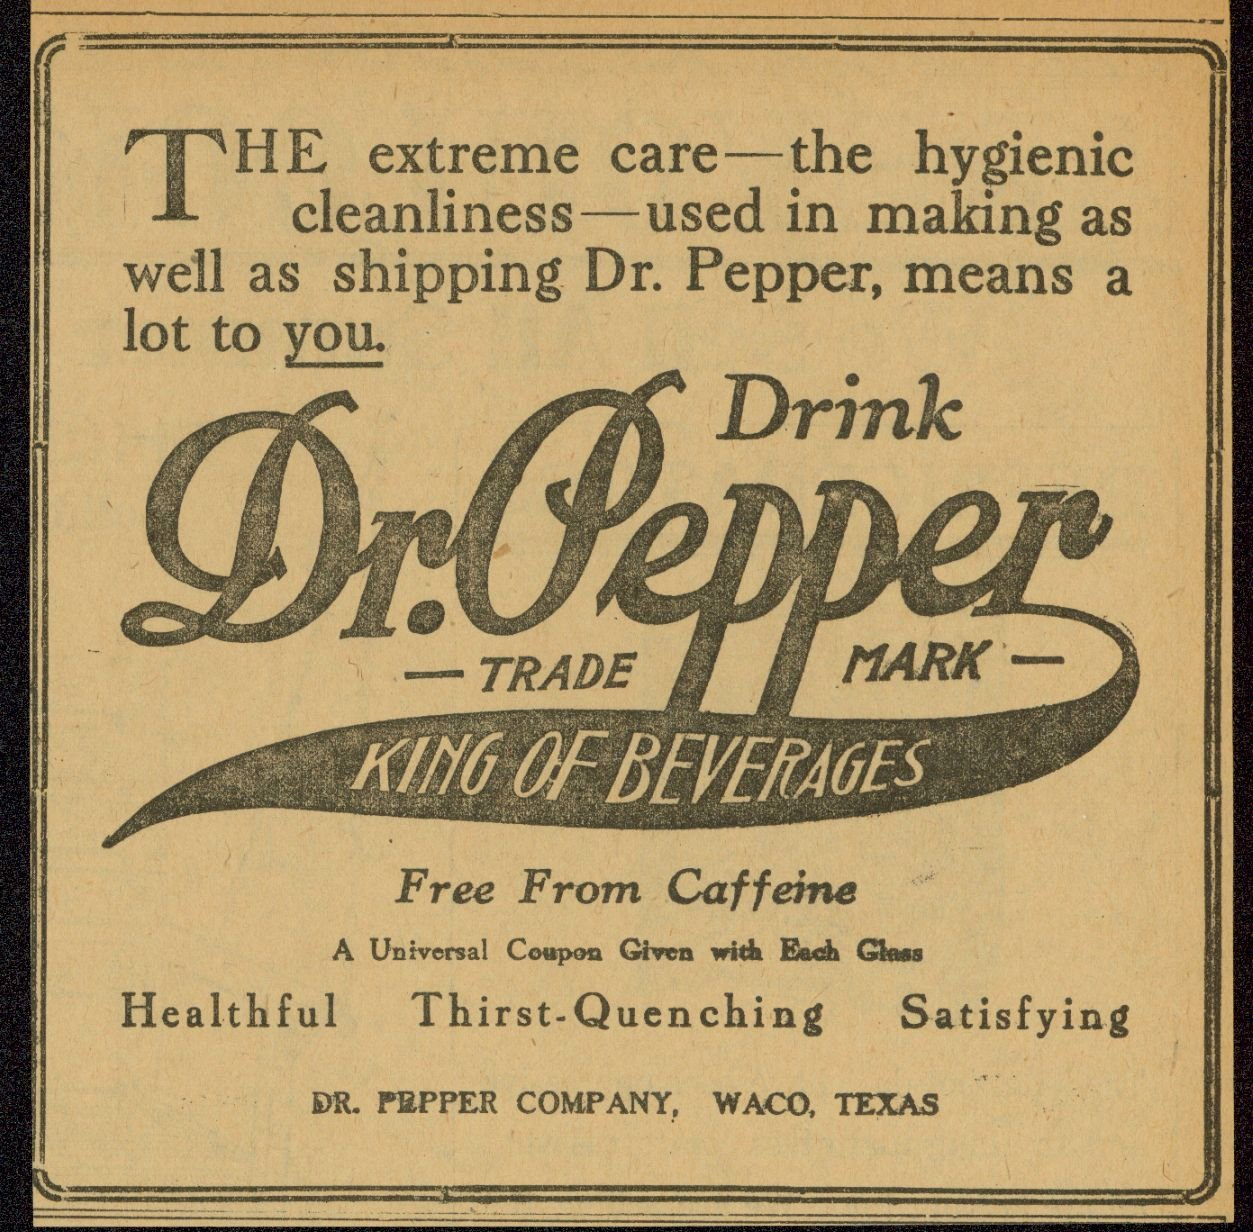 Image via Dr Pepper Museum